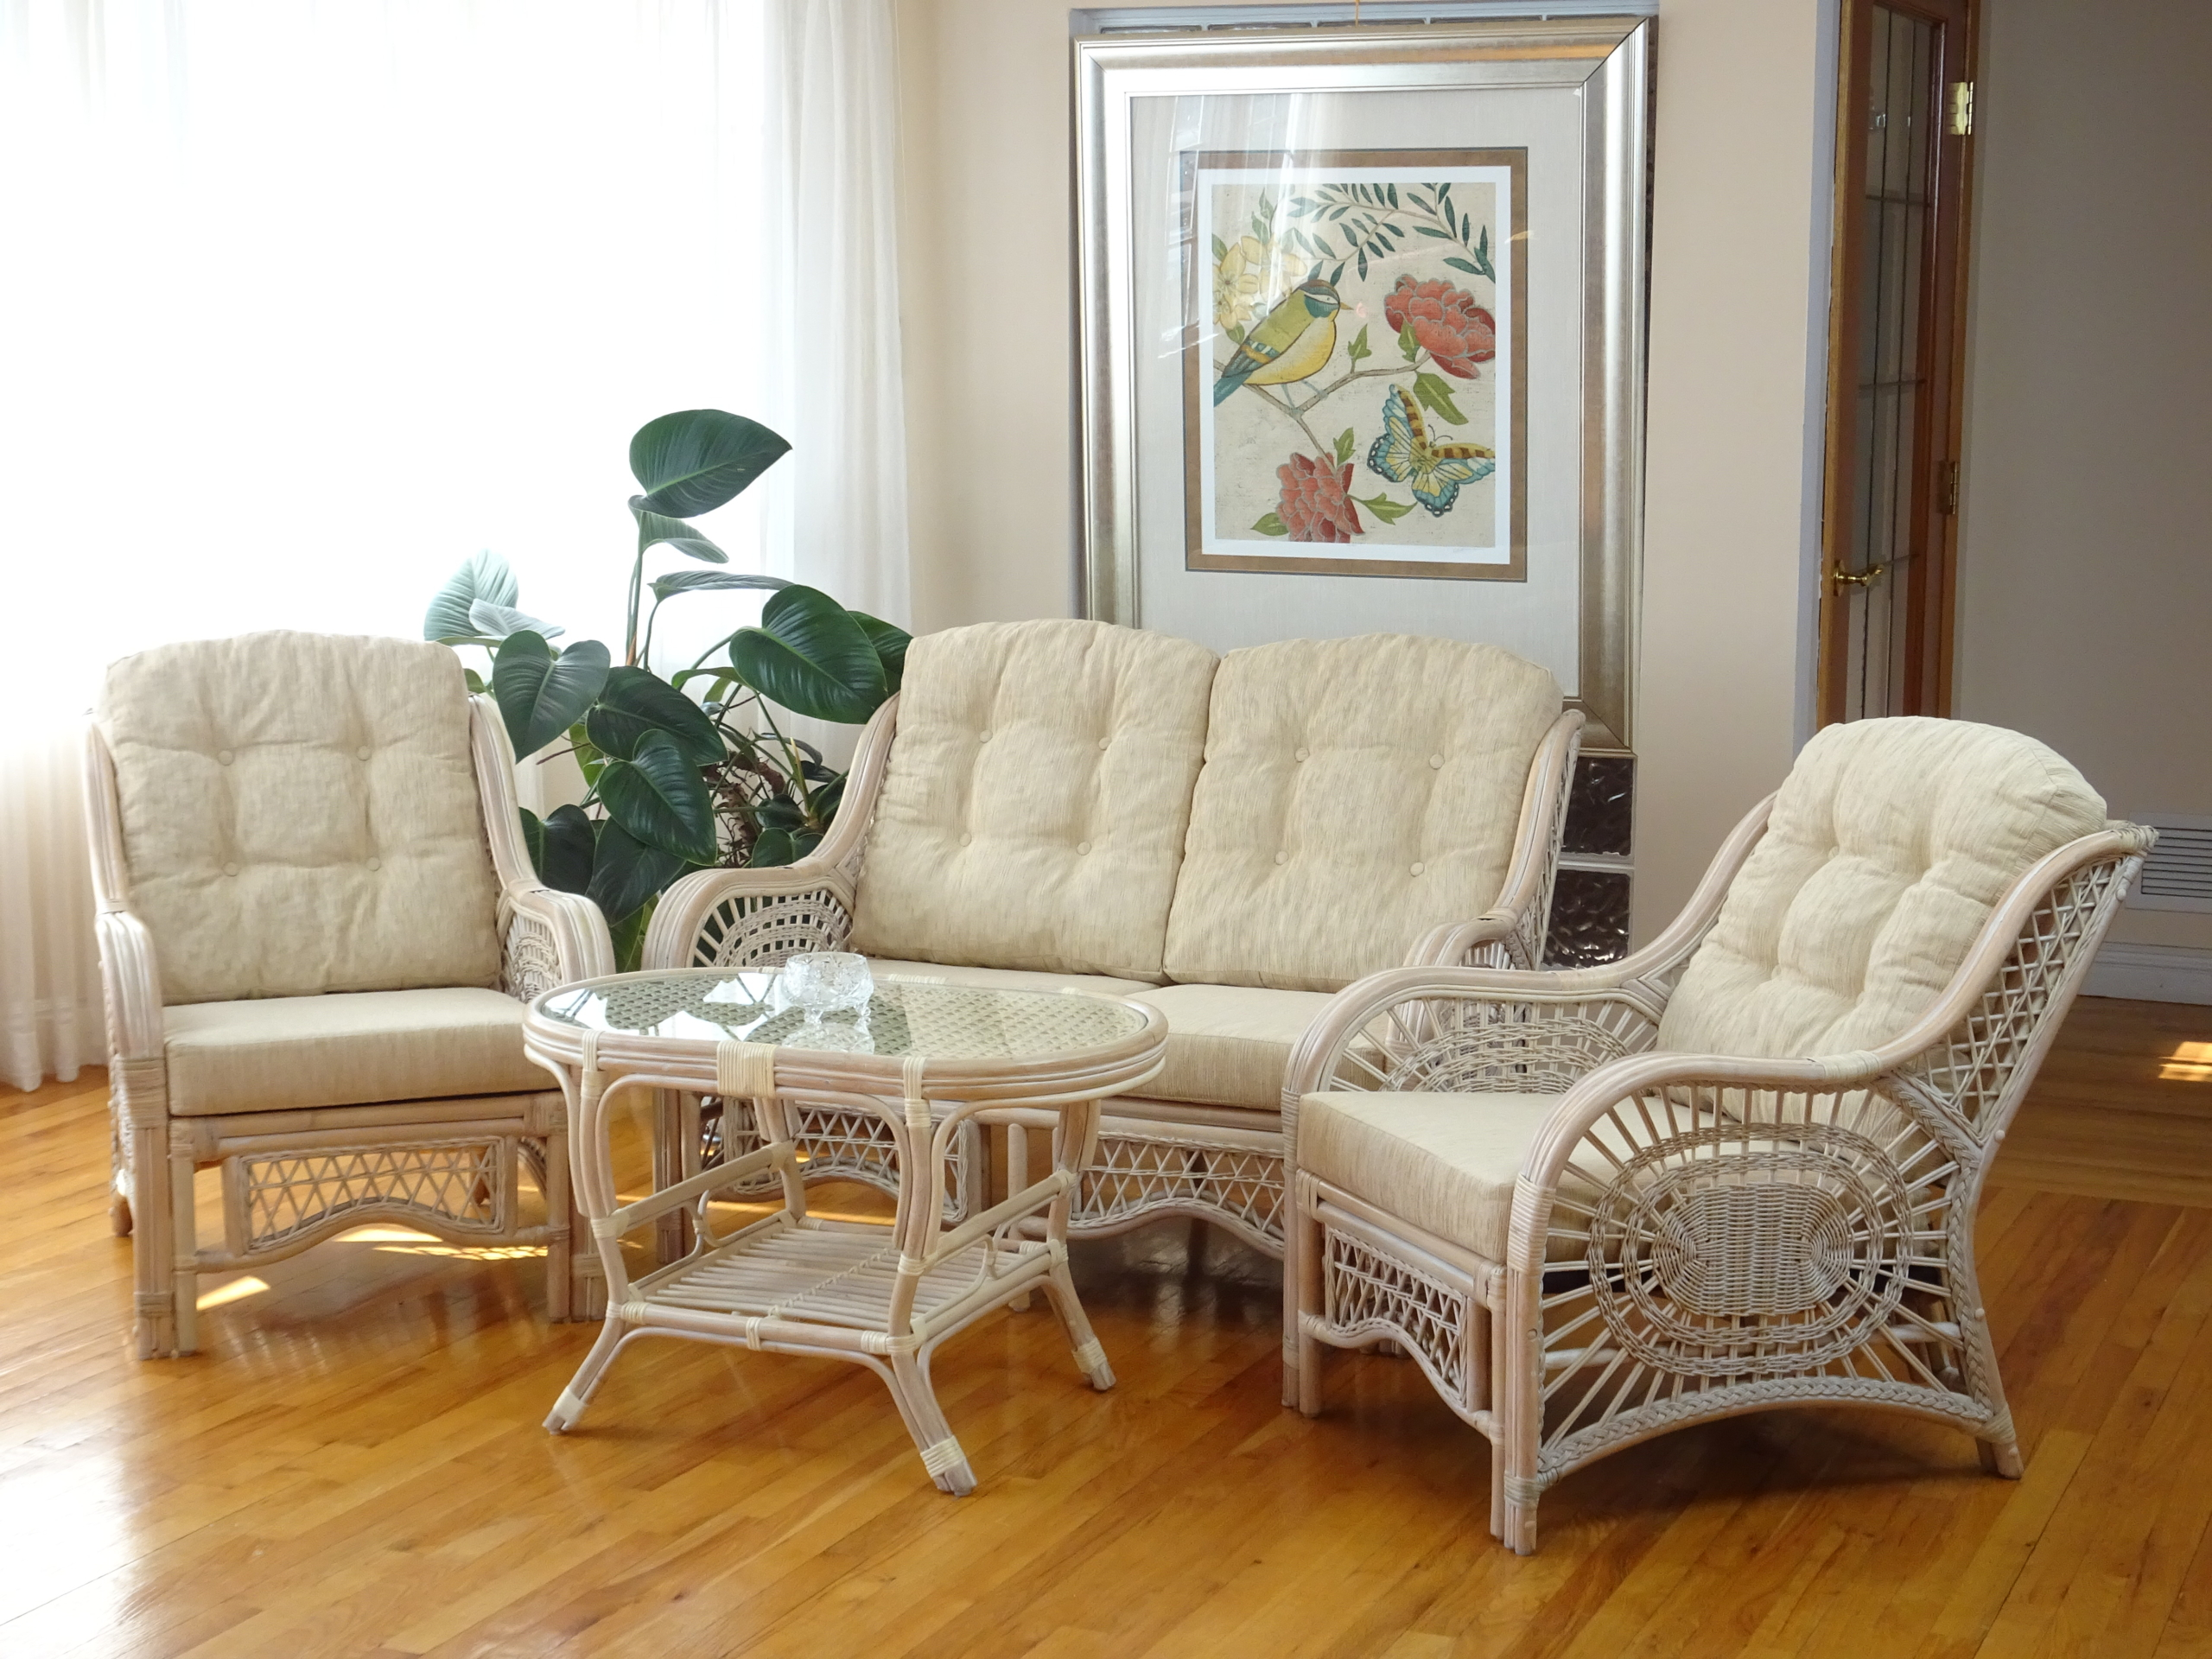 Malibu 4-pc. Living room Set